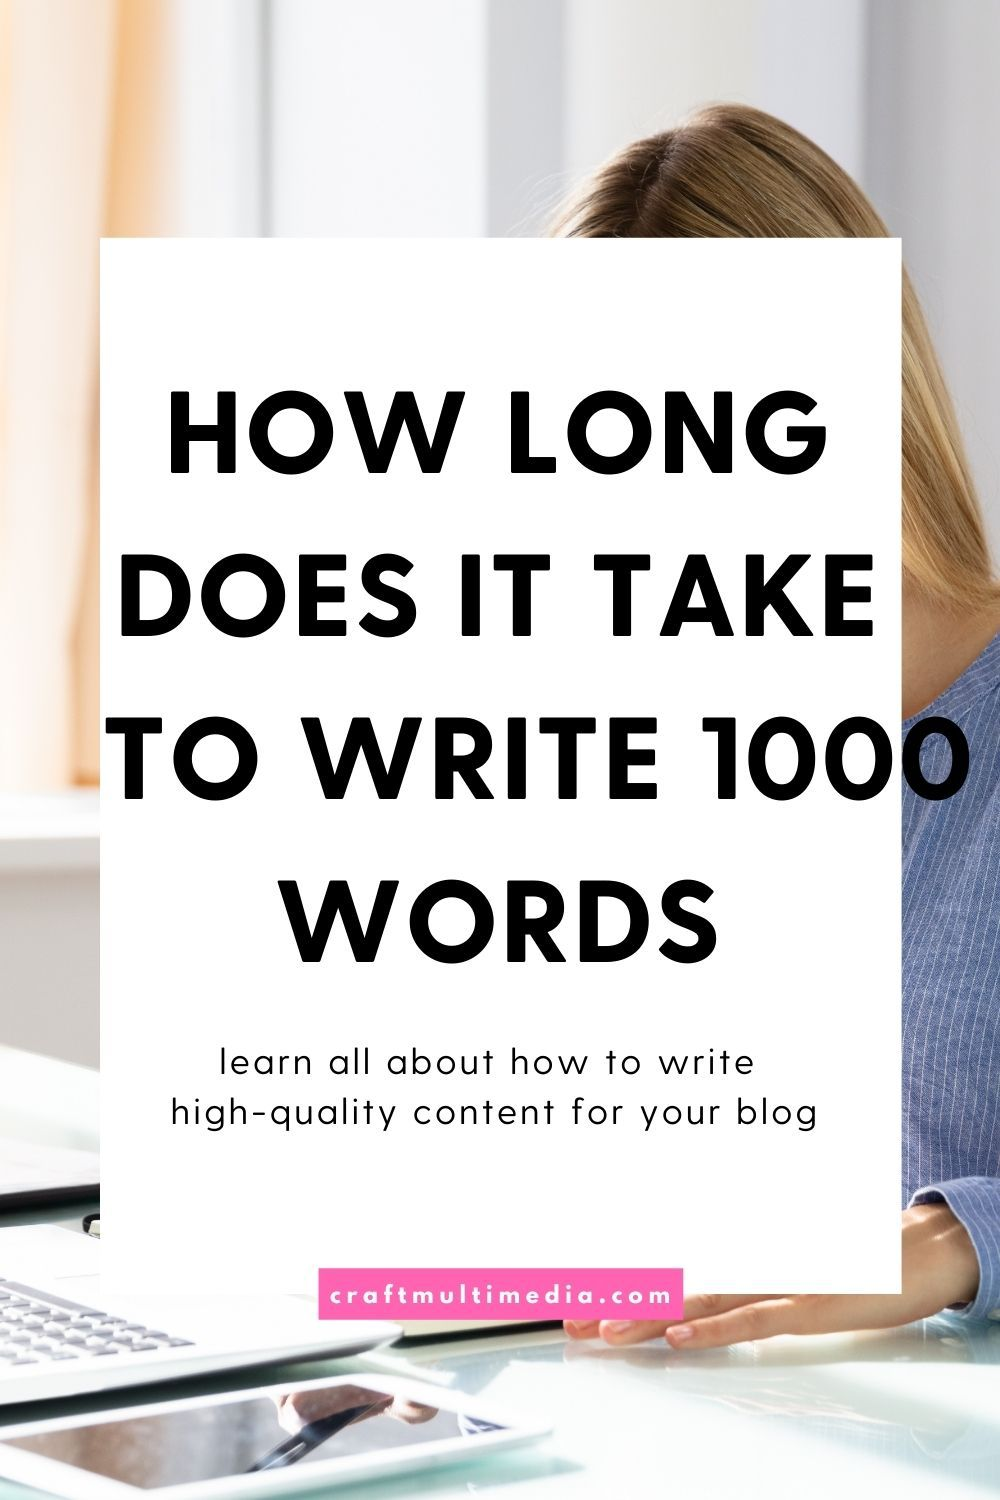 how long does it take to write 1000 words - Craft Multimedia